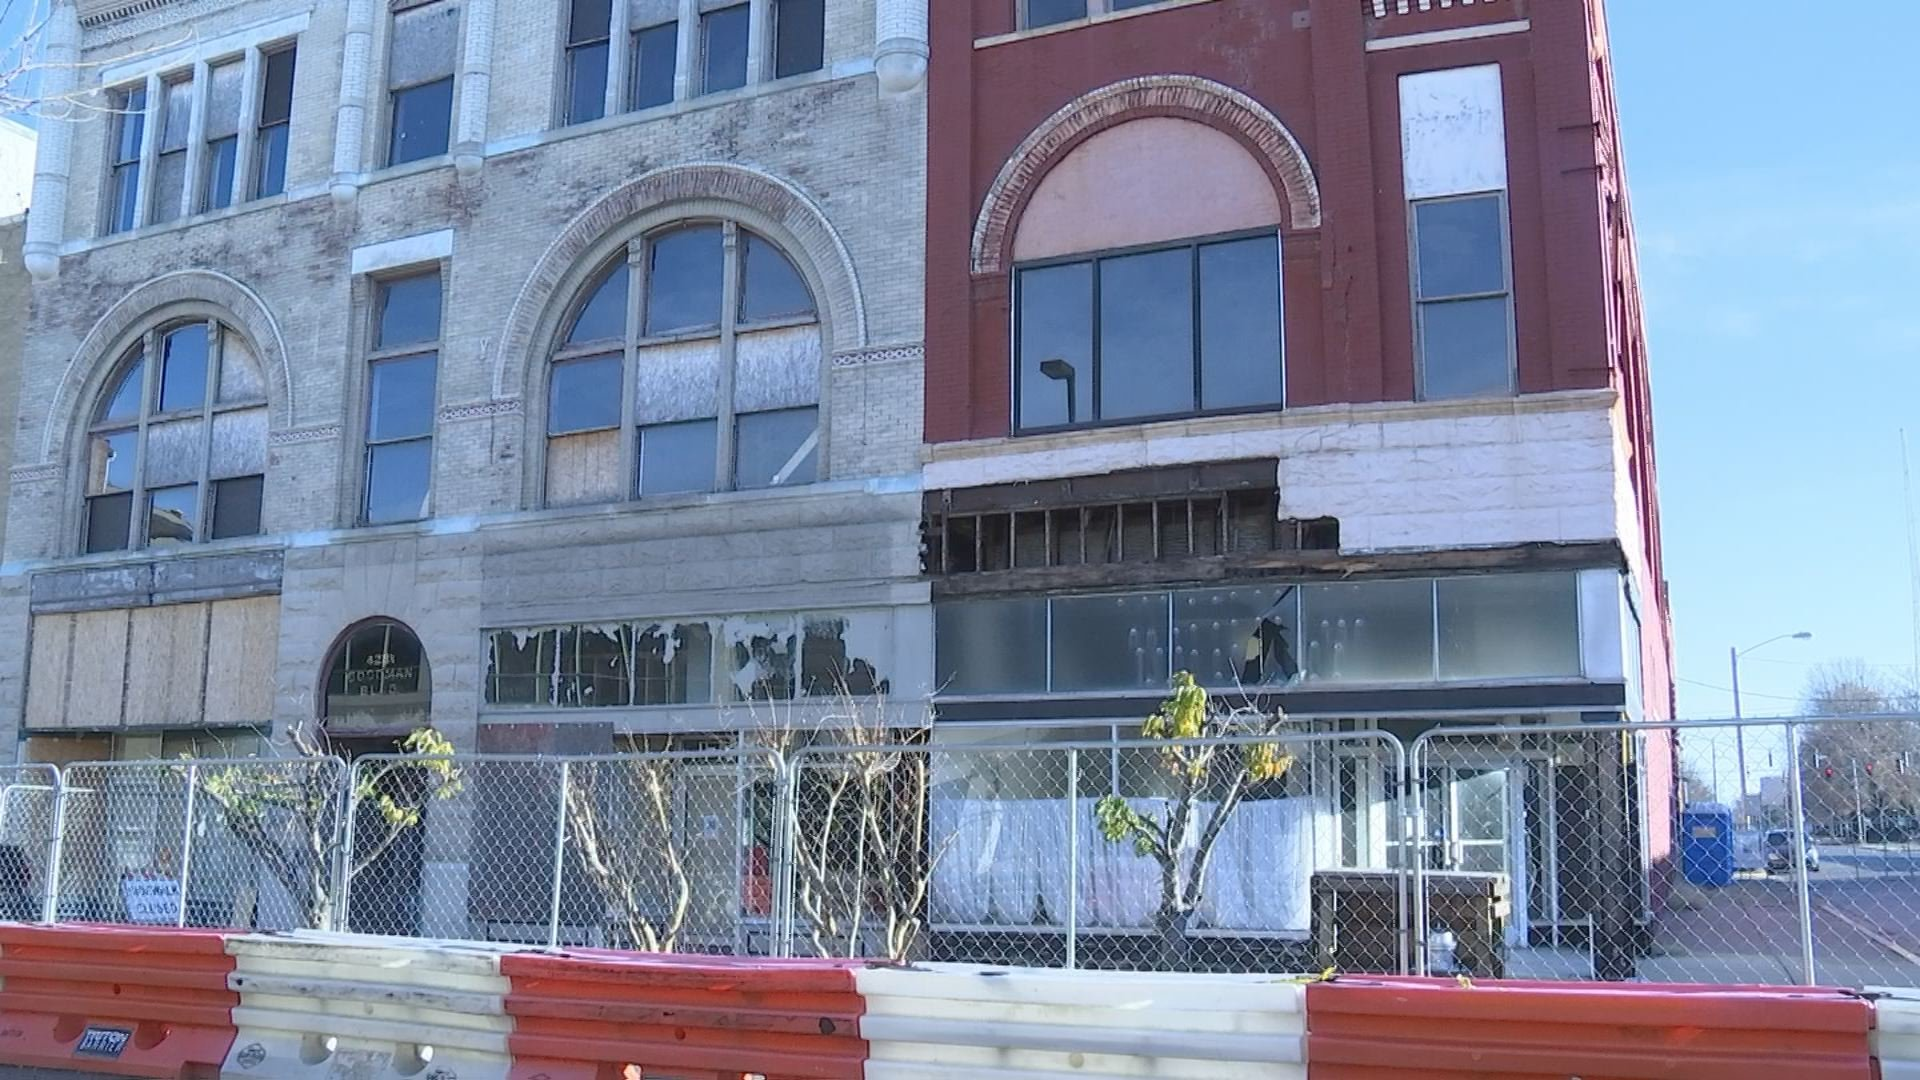 Cost To Demolish A Building In Downtown Paducah May Be